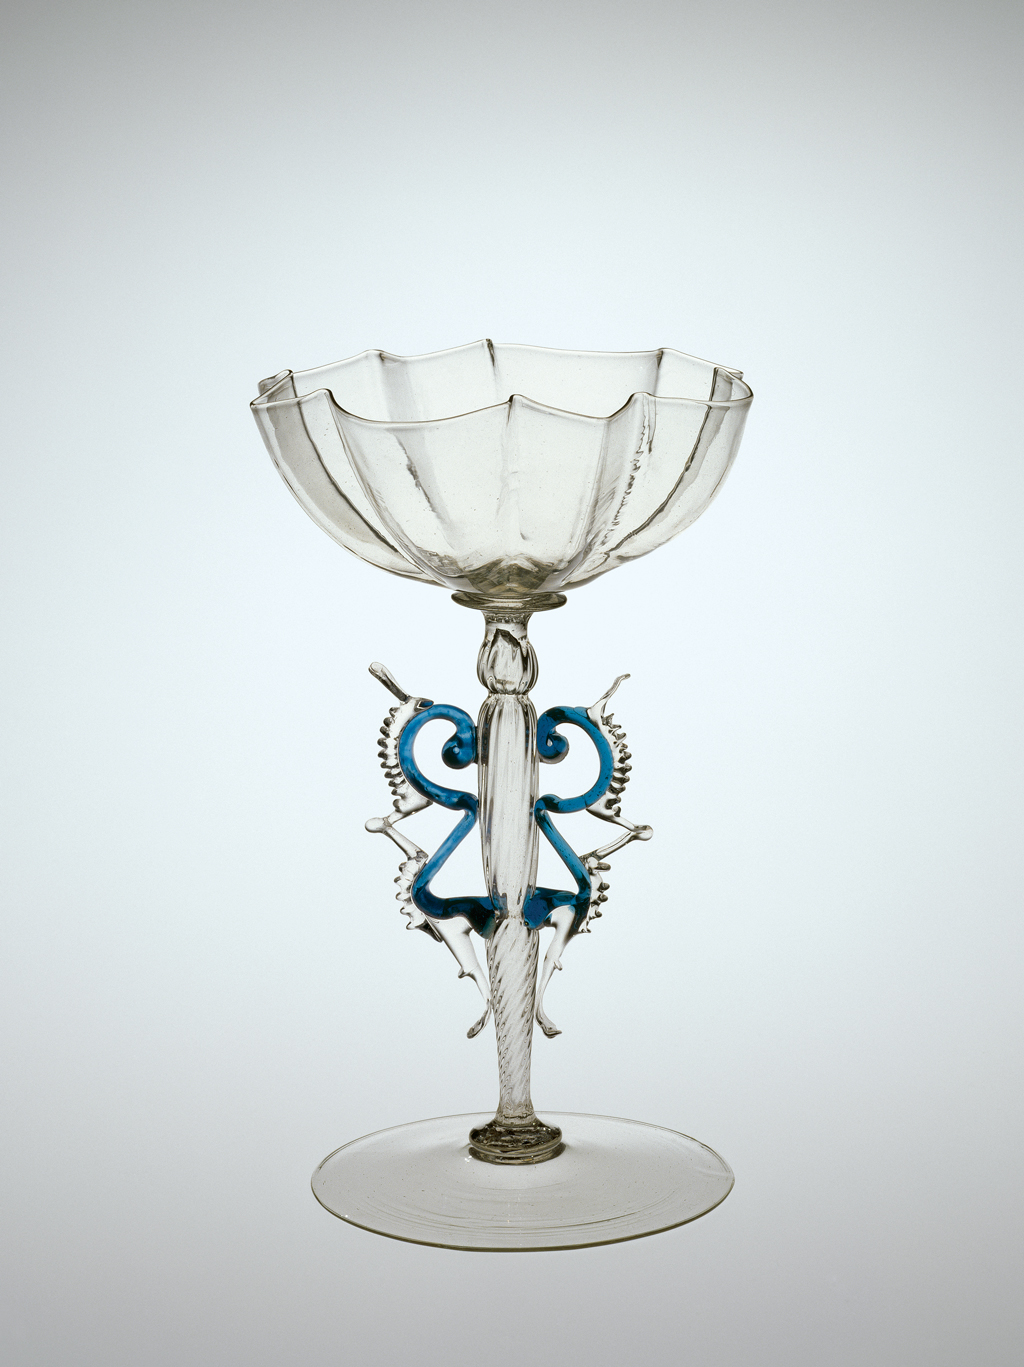 FIG. 47. Winged goblet, blown, applied, tooled. Probably Venice, 17th century. H. 17.3 cm, W. 11.1 cm, D. (foot) 11 cm. The Corning Museum of Glass (2000.3.13).